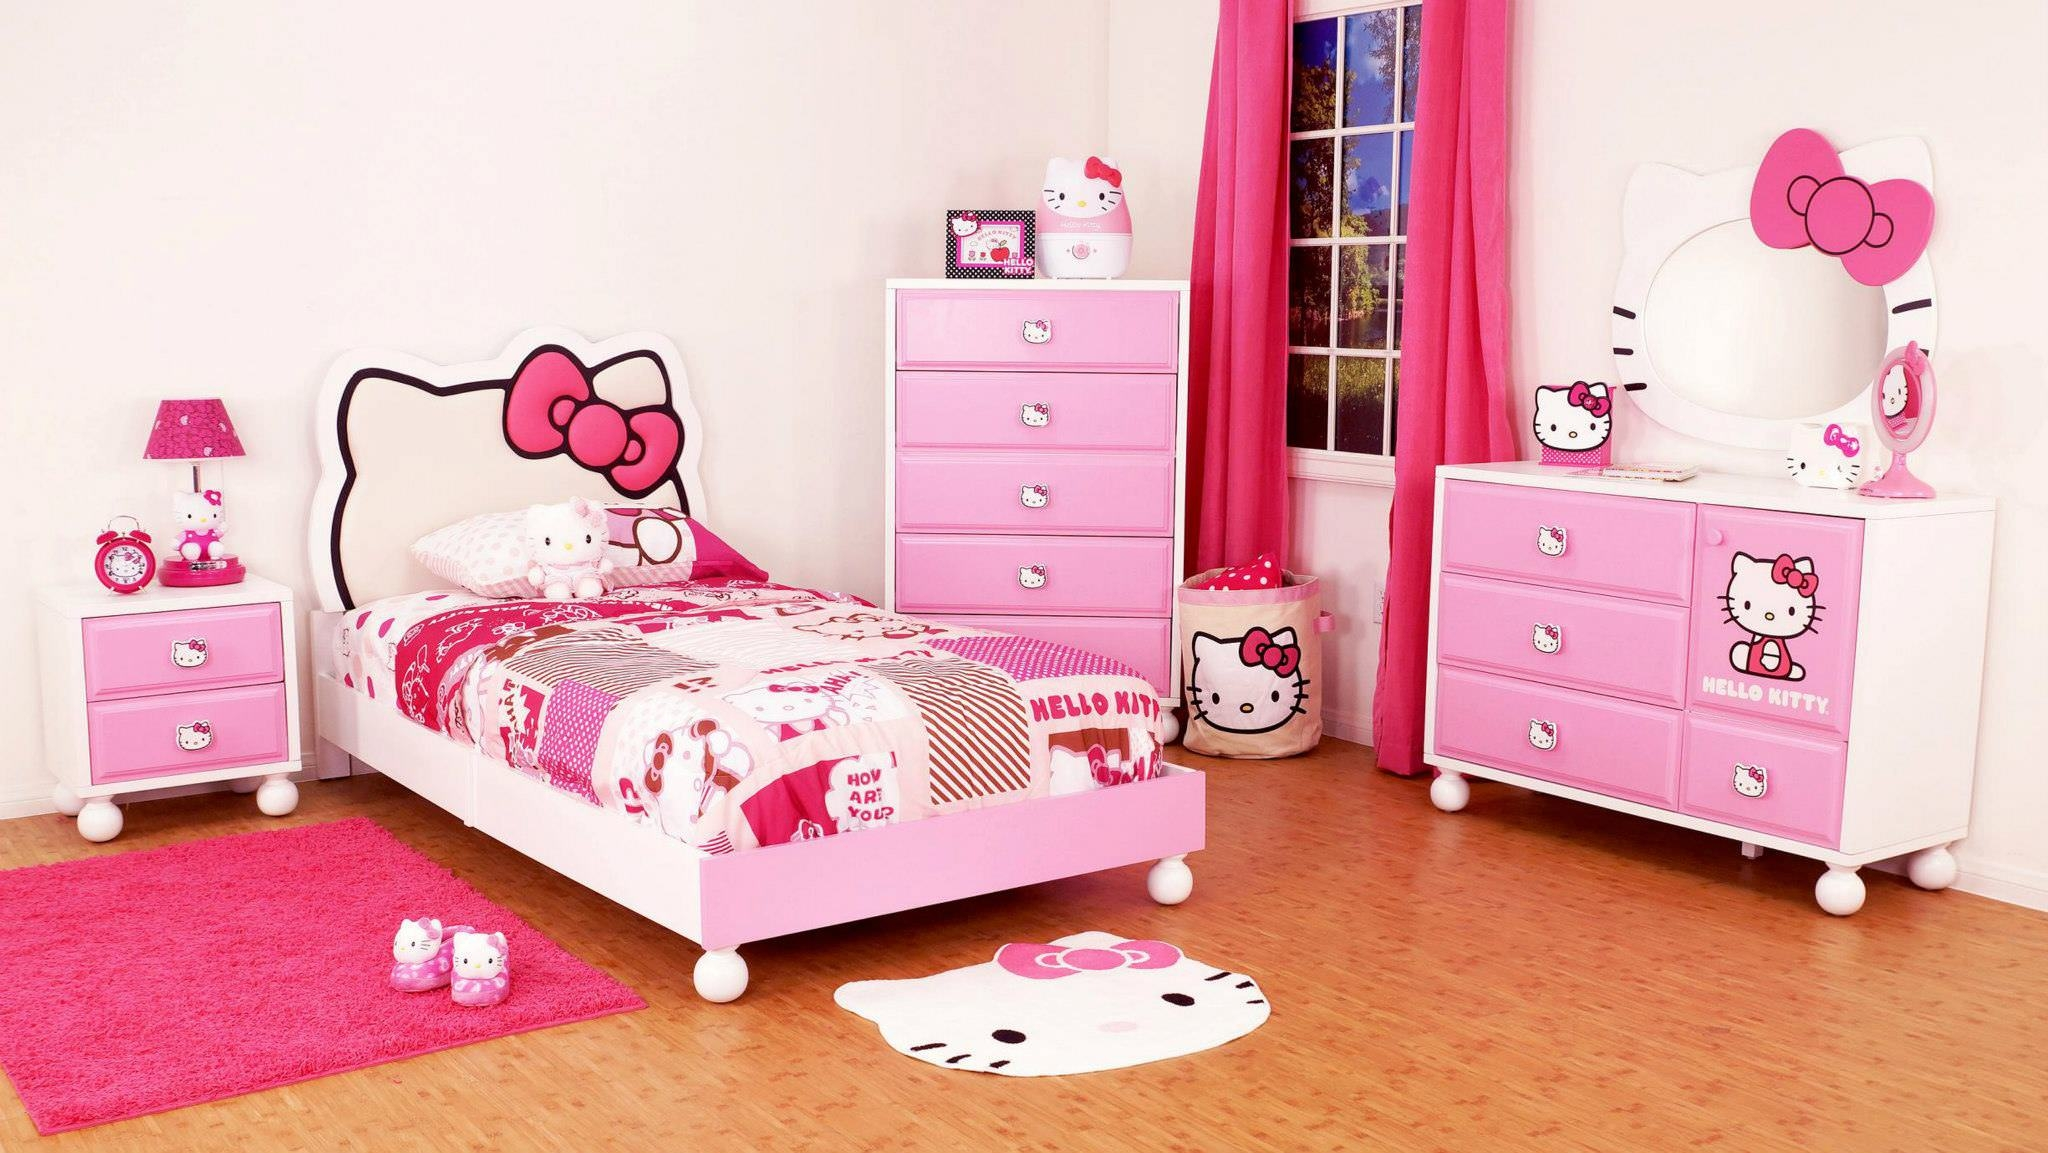 Kitty Room Design